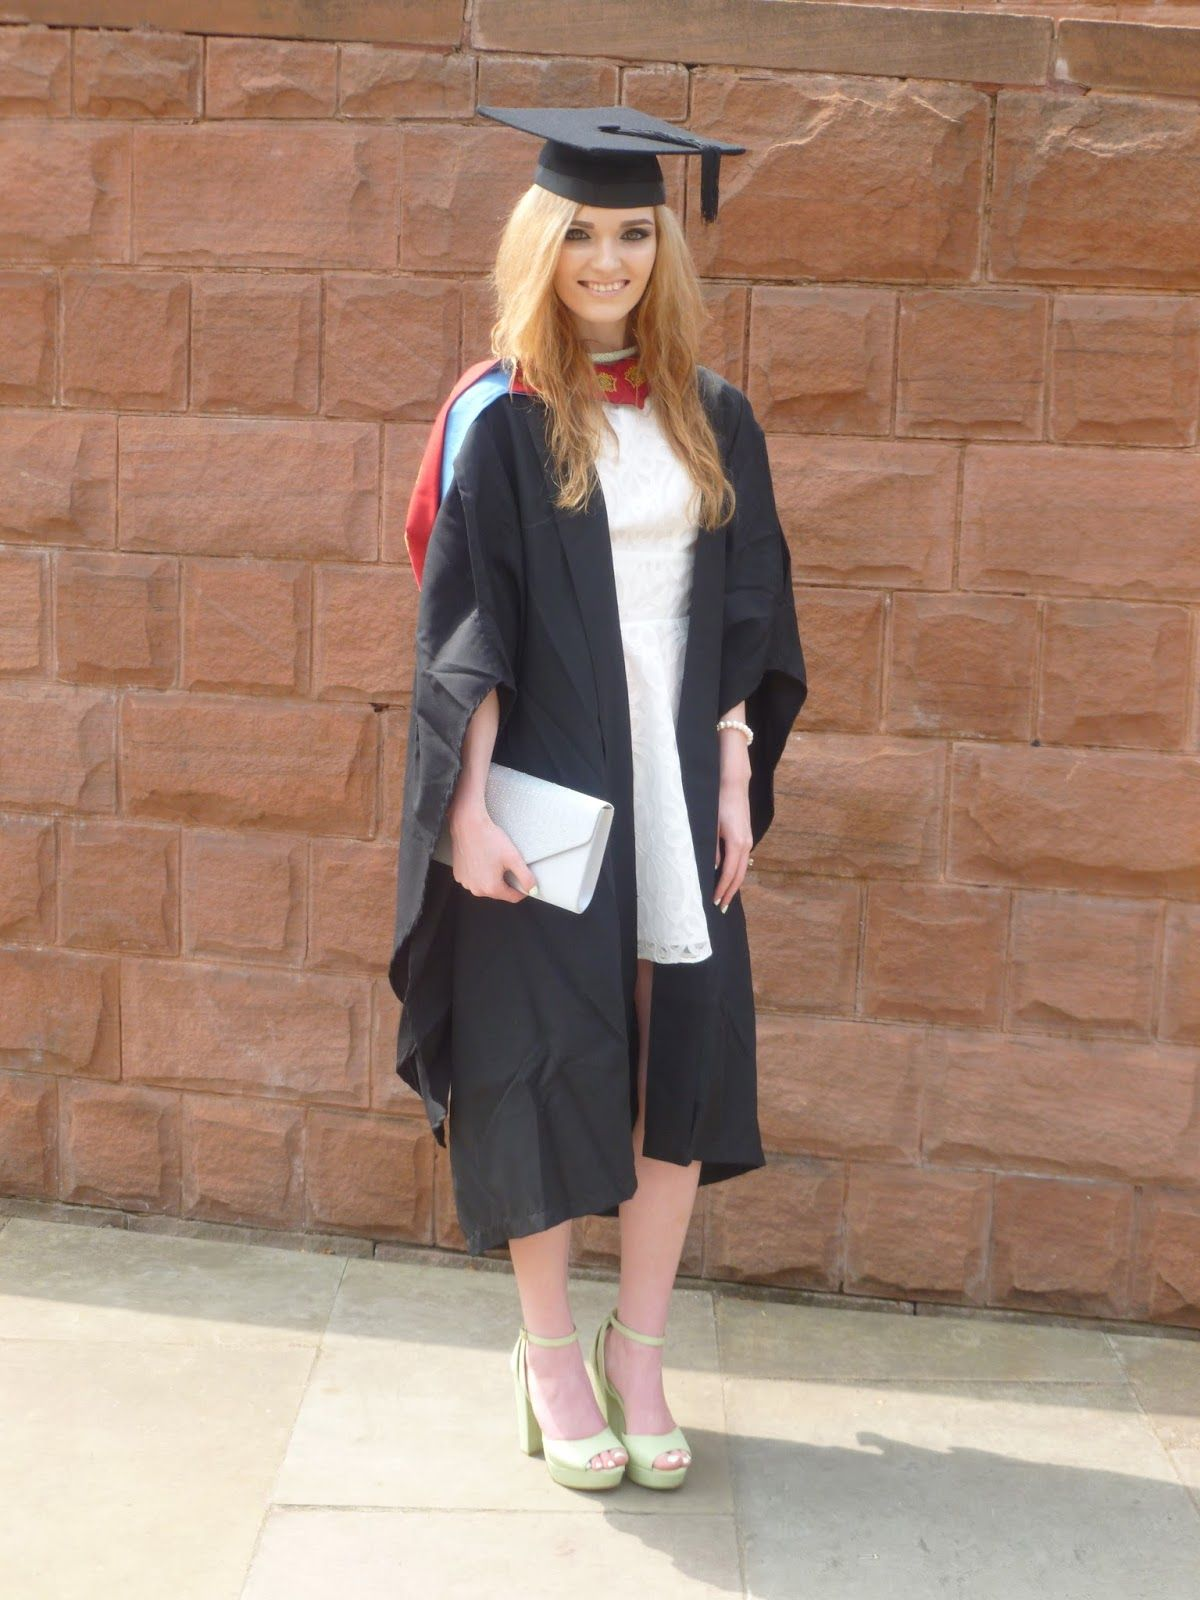 87f32a3eecd Image result for university graduation outfits girls